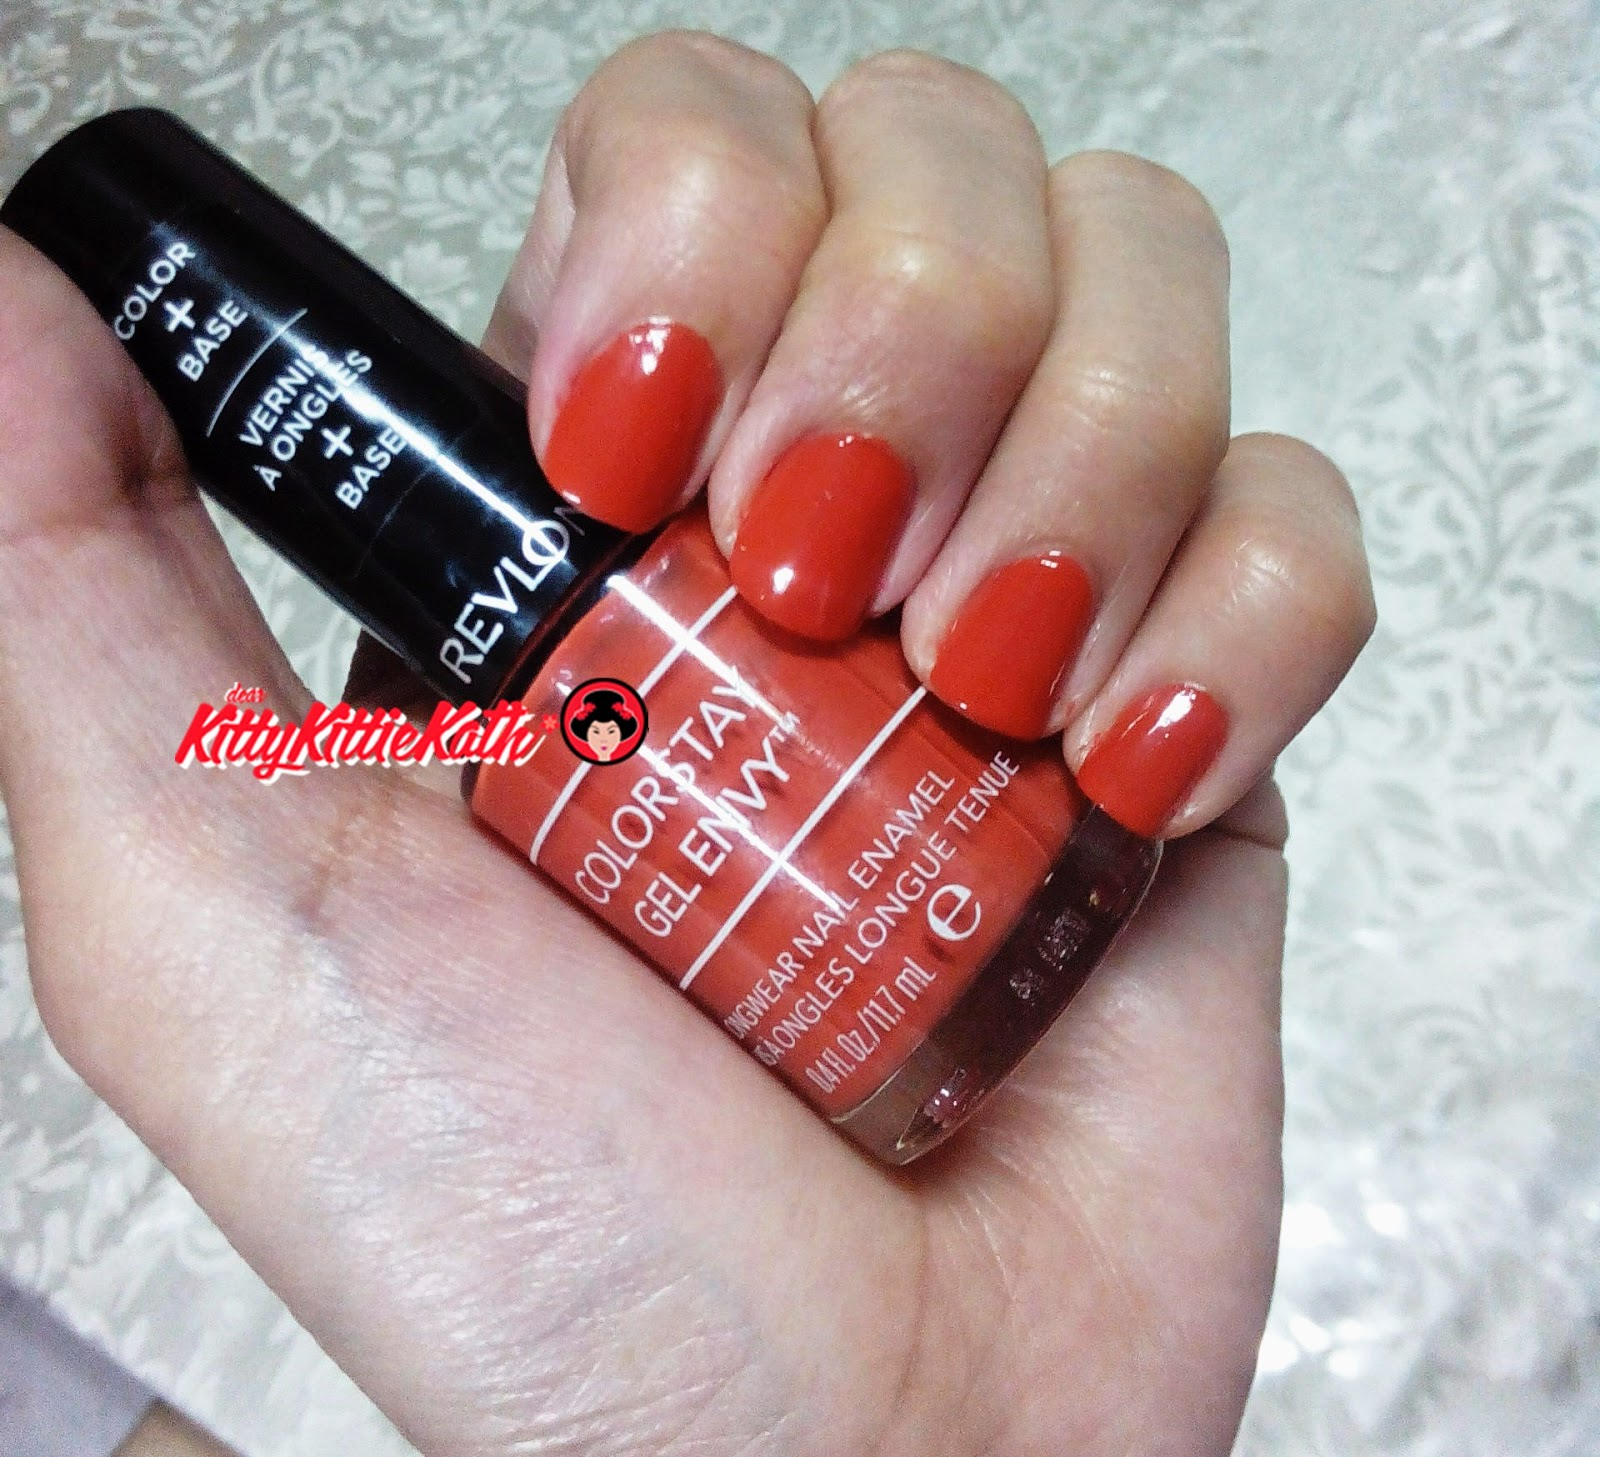 Product Review: Revlon Colorstay Gel Envy Nail Enamel Revlon Colorstay Gel Envy Nail Enamel in LONG SHOT- orange with brown undertone, close to terracotta